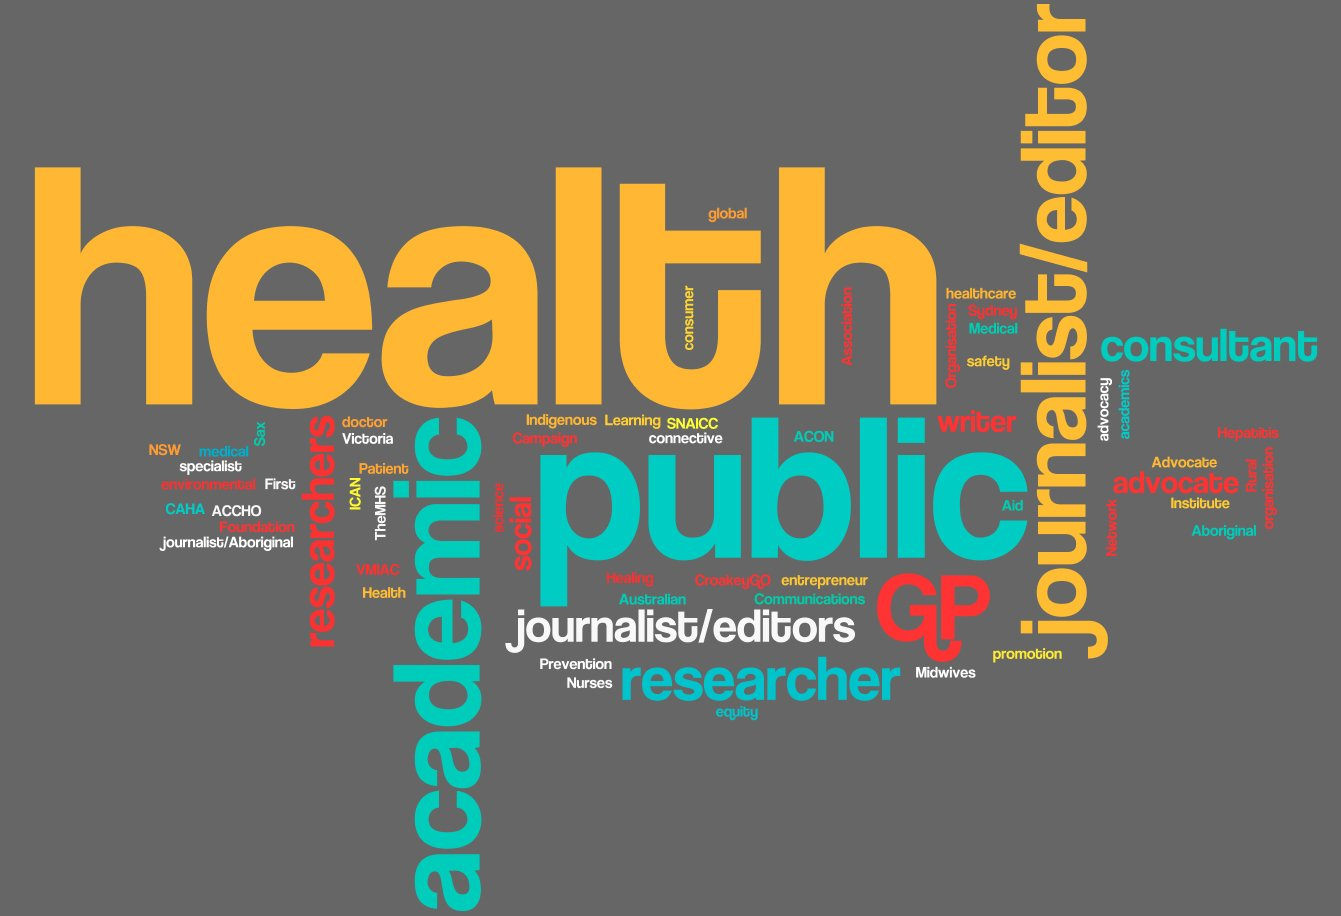 Unpacking the collective impact of @WePublicHealth: check out the latest news